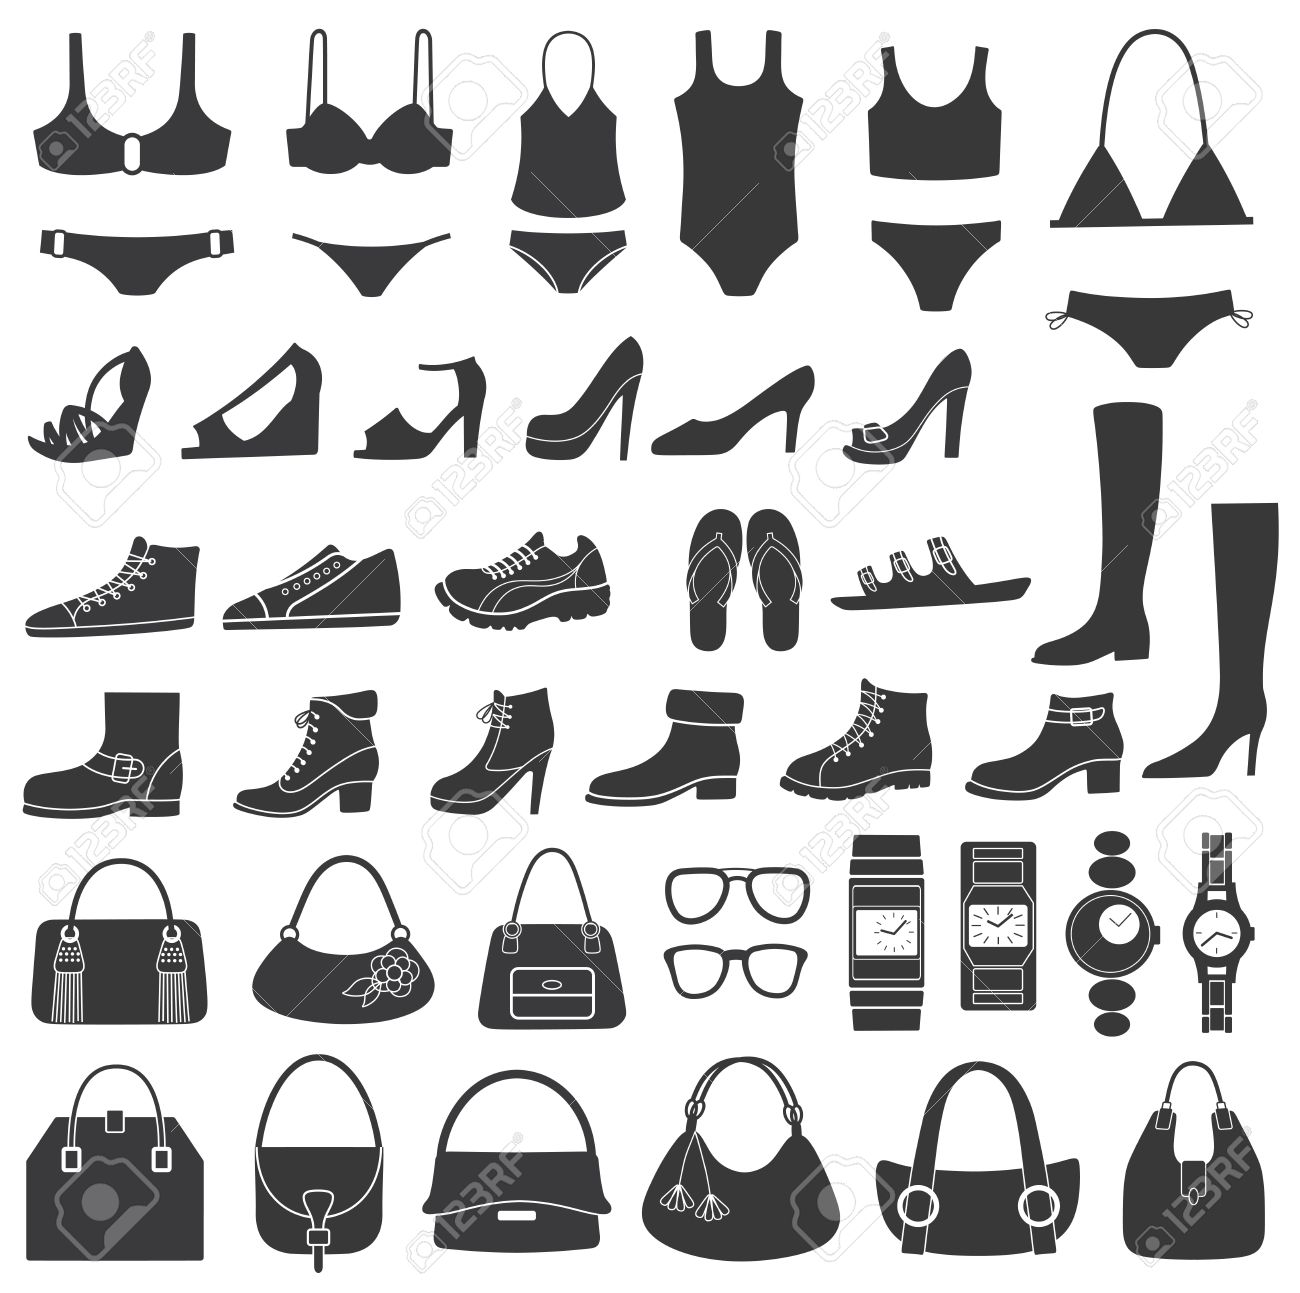 Set Of Vector Silhouettes Shoes, Swimwear And Accessories Icons.